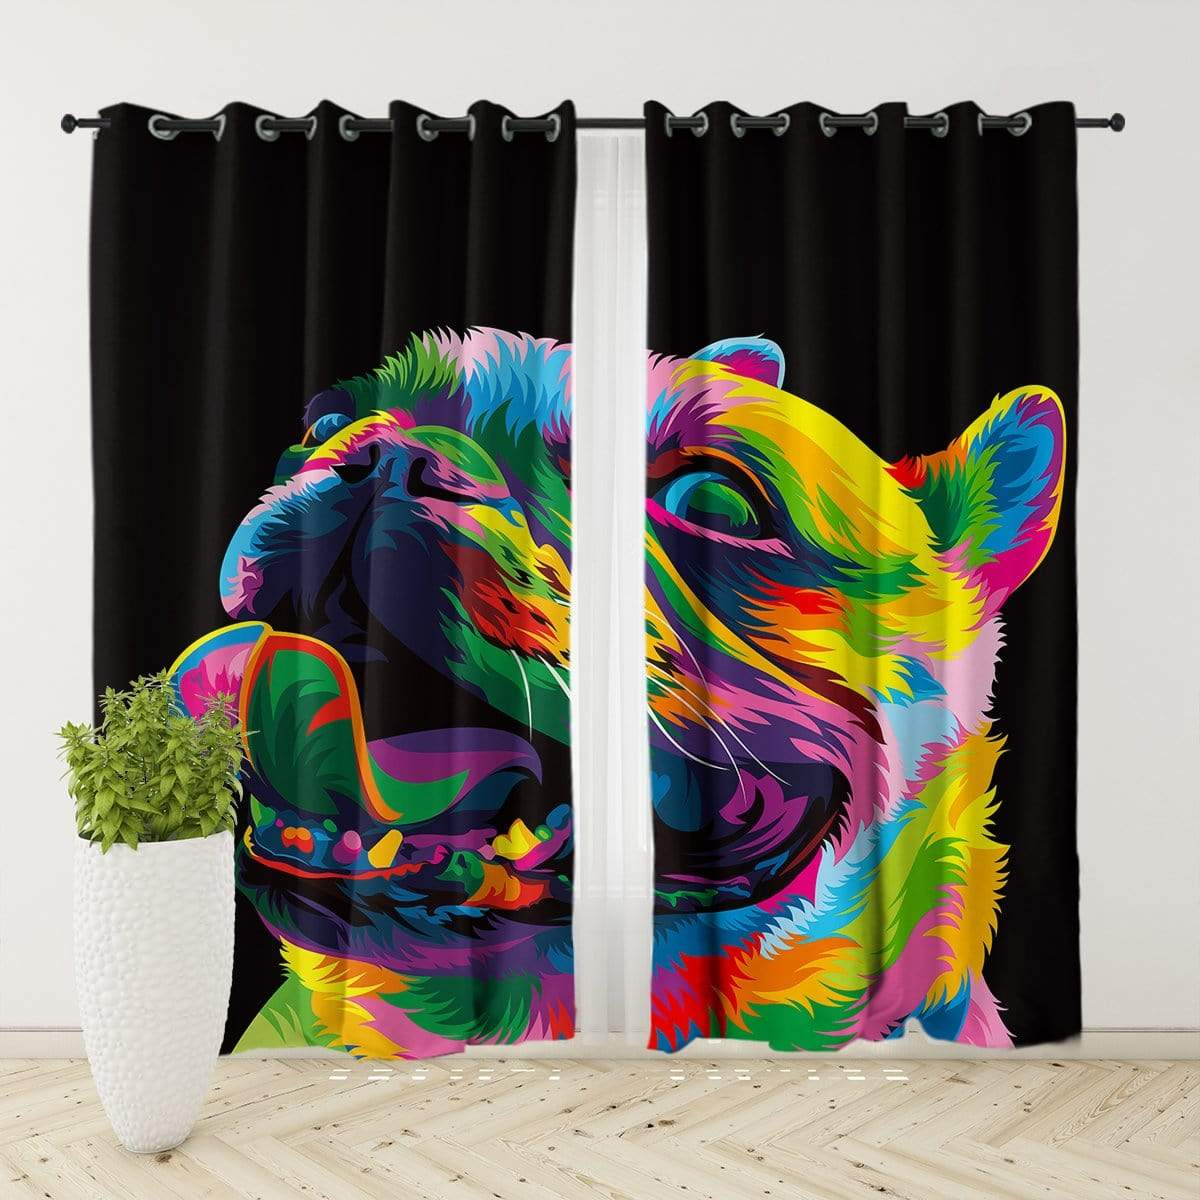 Bright Pug Curtain Set